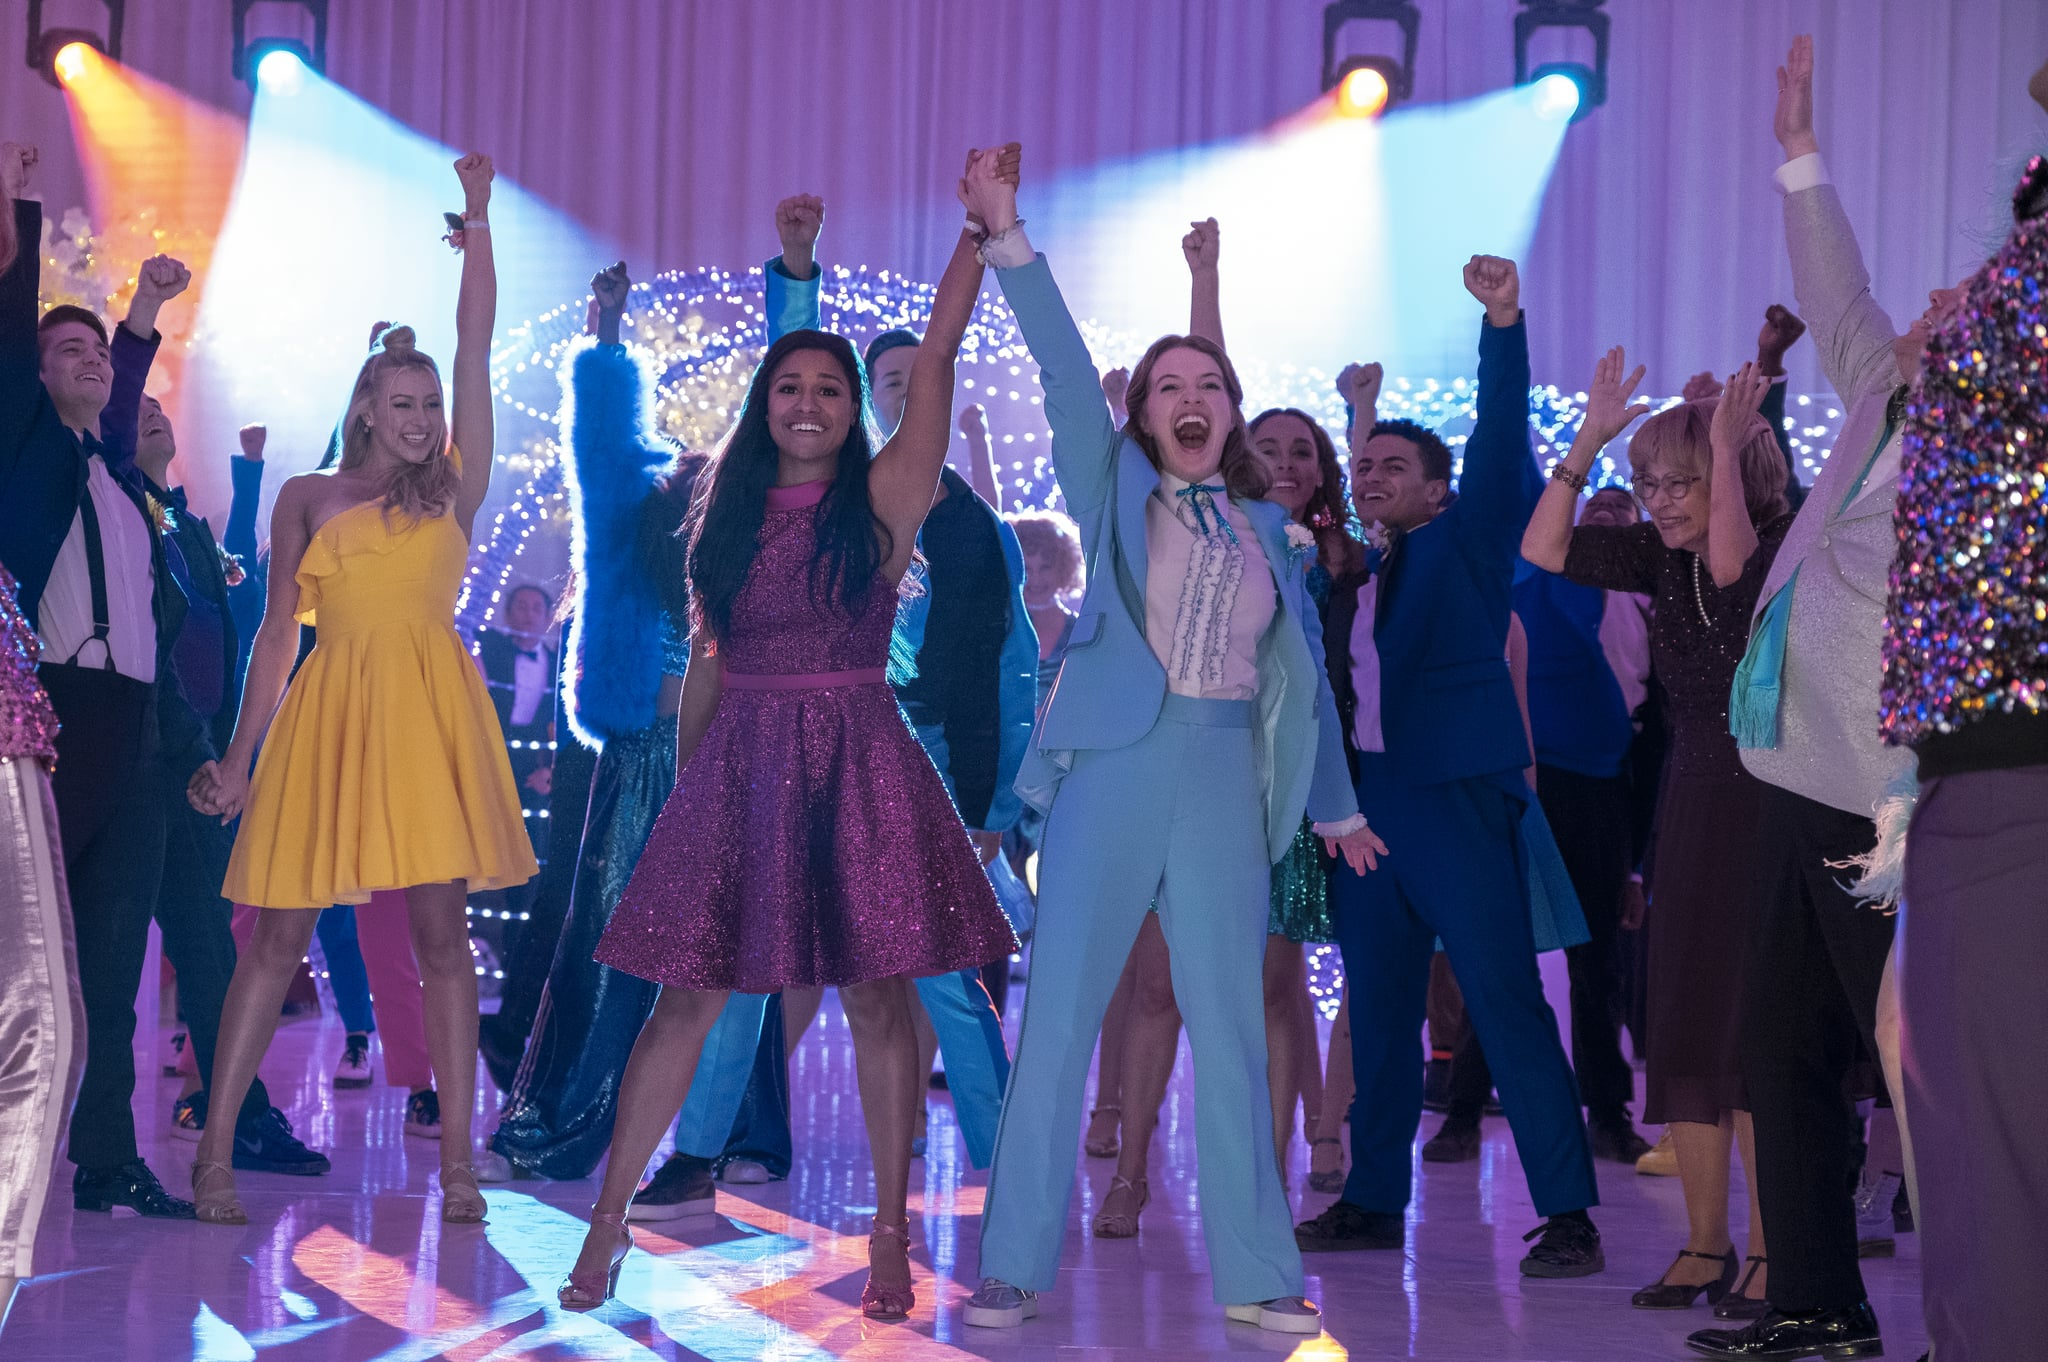 THE PROM (L to R)  NICO GREETHAM as NICK, LOGAN RILEY HASSEL as KAYLEE, ARIANA DEBOSE as ALYSSA GREENE, ANDREW RANNELLS as TRENT OLIVER, JO ELLEN PELLMAN as EMMA, SOFIA DELER as SHELBY, NATHANIEL POTVIN as KEVIN, TRACEY ULLMAN as VERA, JAMES CORDEN as BARRY GLICKMAN in THE PROM. Cr. MELINDA SUE GORDON/NETFLIX  2020